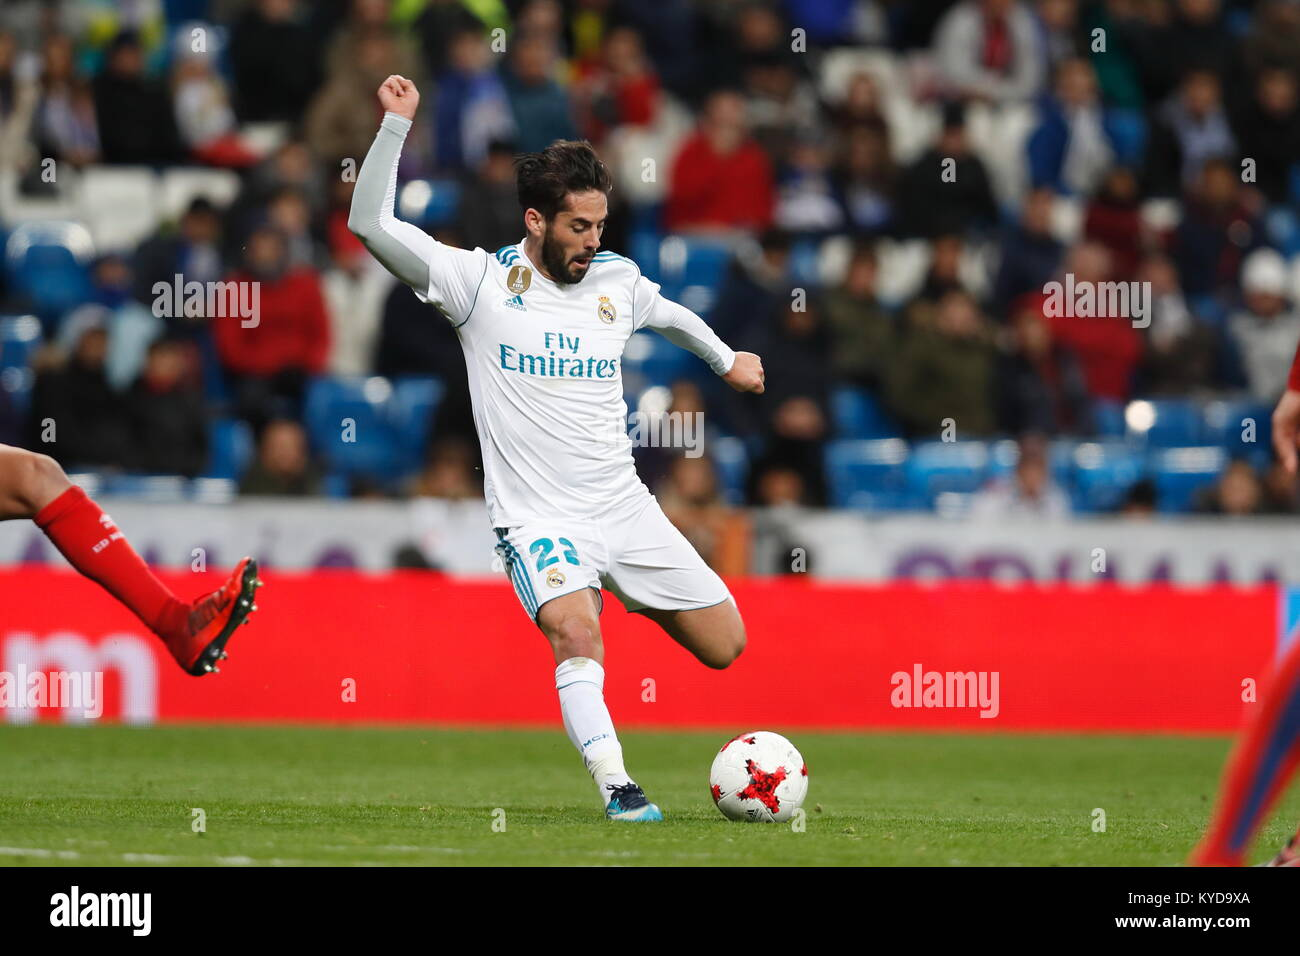 Madrid, Spain. 10th Jan, 2018. Isco (Real) Football/Soccer : Spanish 'Copa del Rey' match between Real Madrid - Stock Image